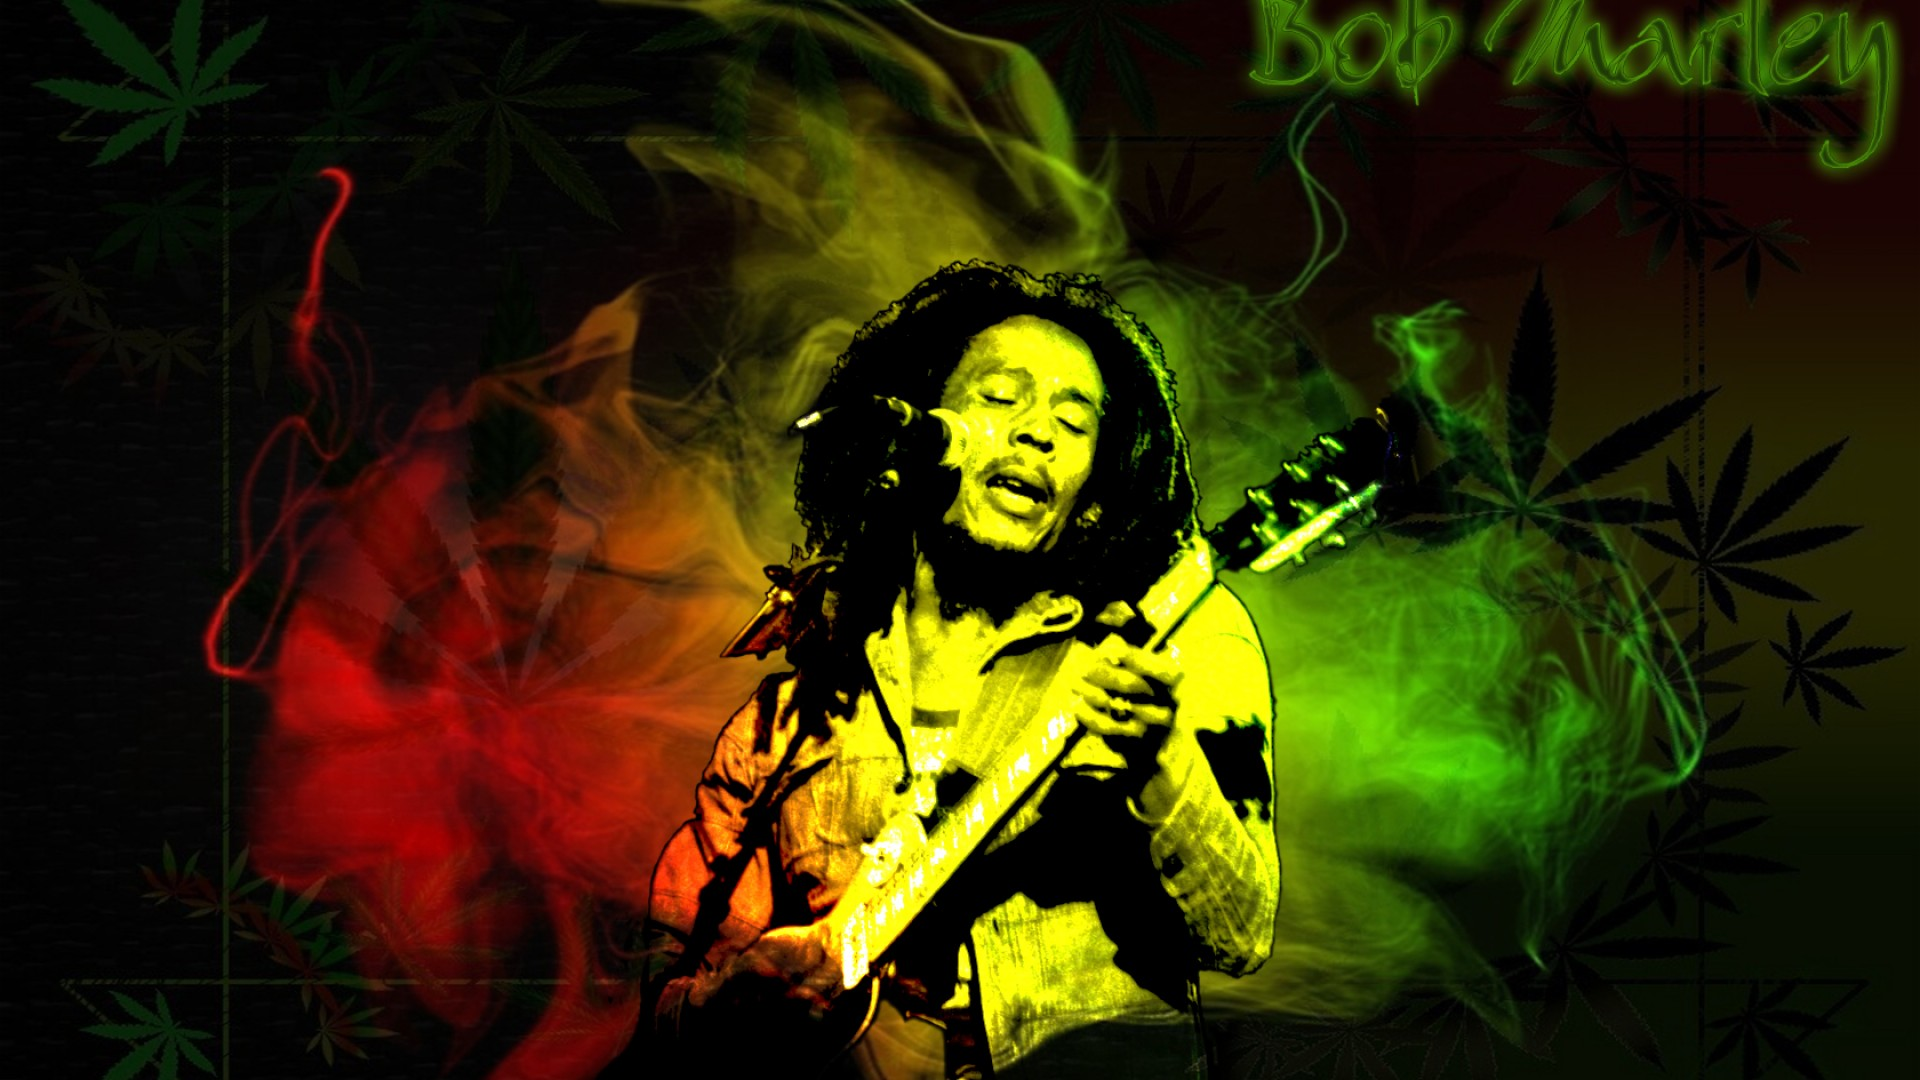 Bob Marley HD Wallpapers Free Download